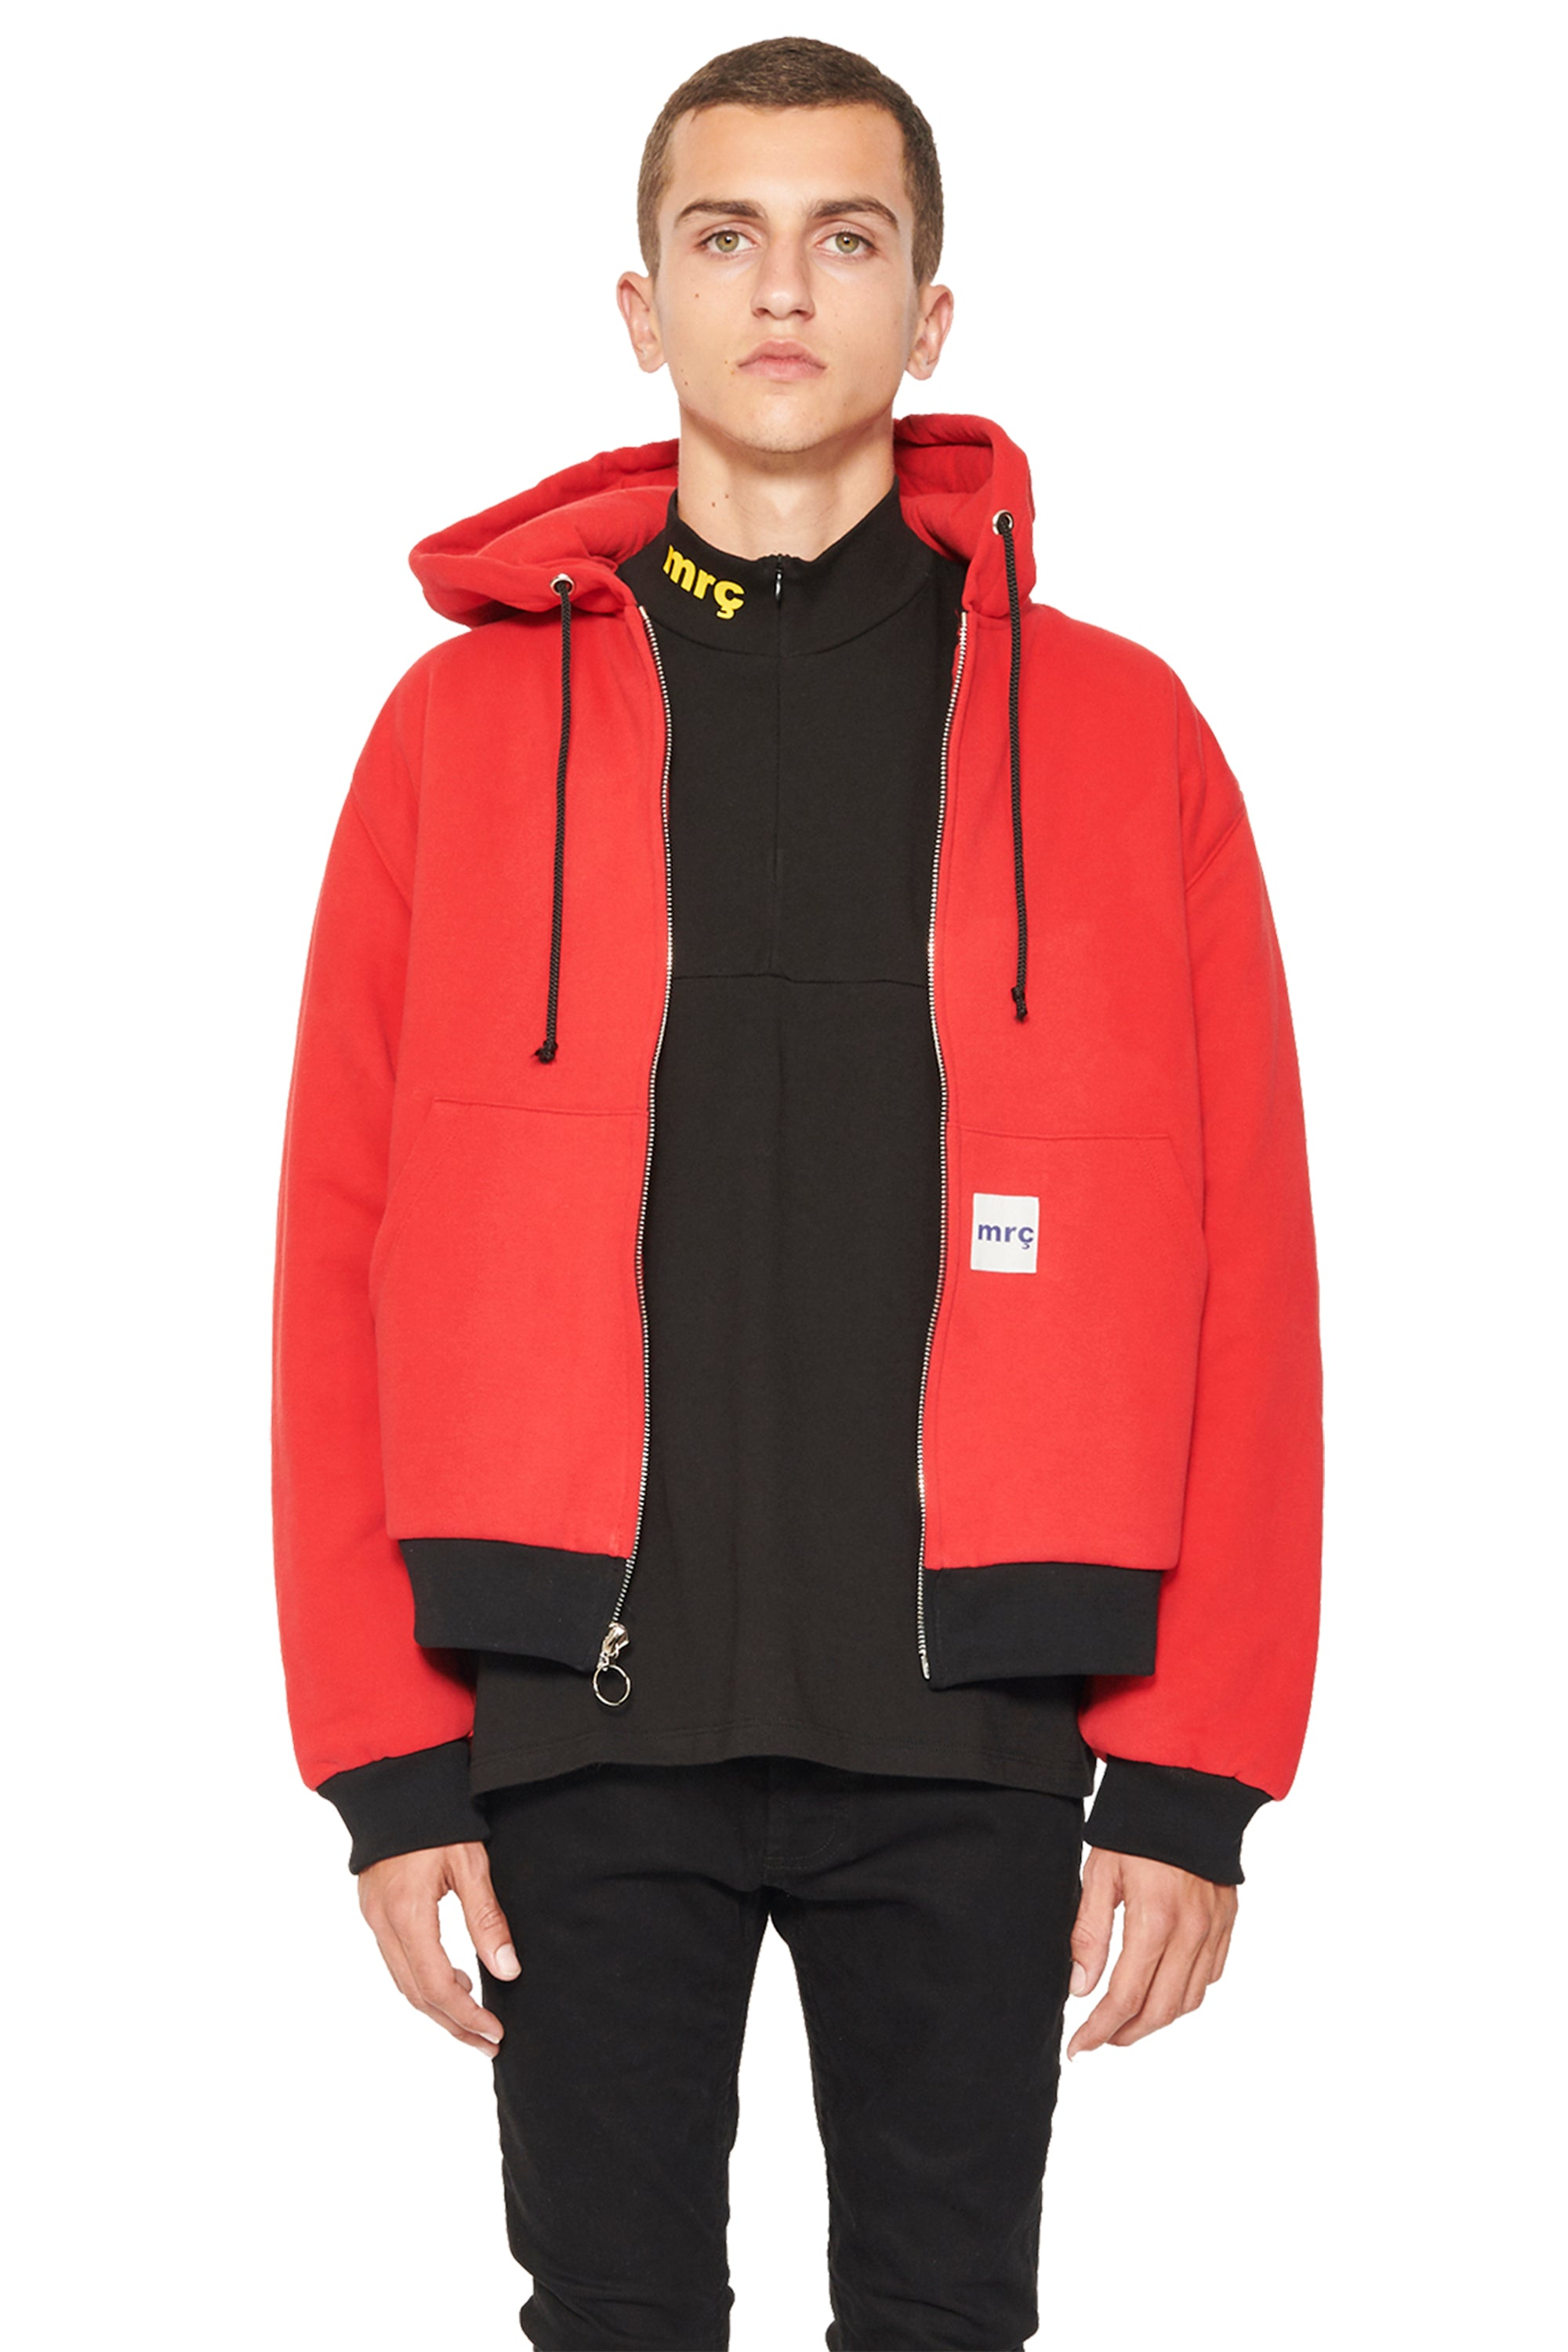 PUFFY WORKWEAR ZIP UP HOODIE - RED/BLACK